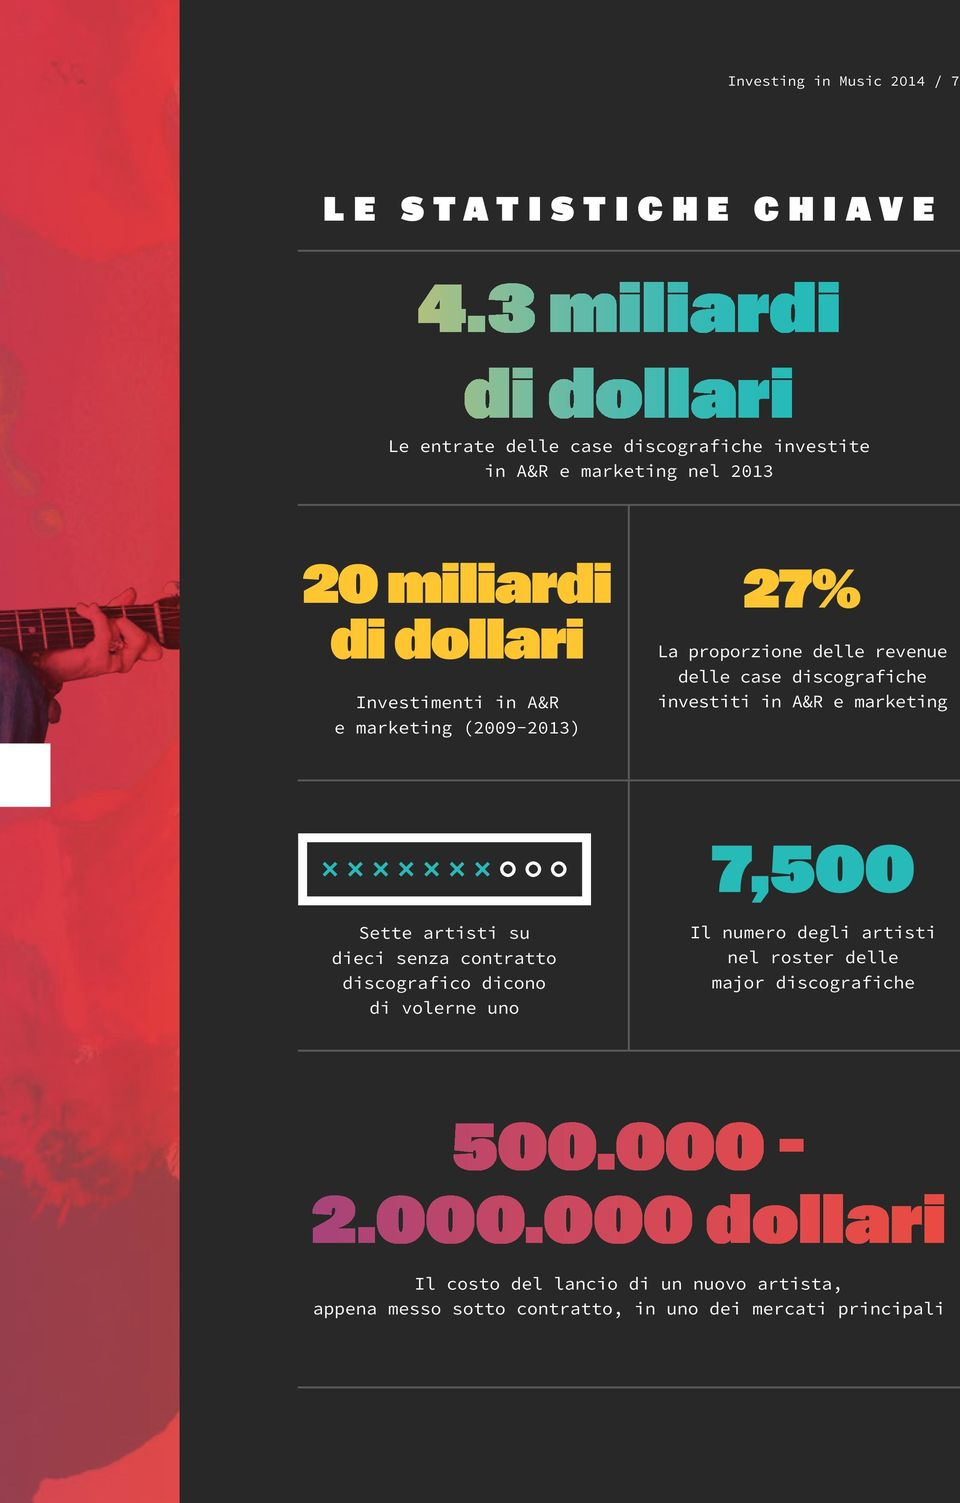 marketing (2009-2013) 27% La proporzione delle revenue delle case discografiche investiti in A&R e marketing 7,500 Sette artisti su dieci